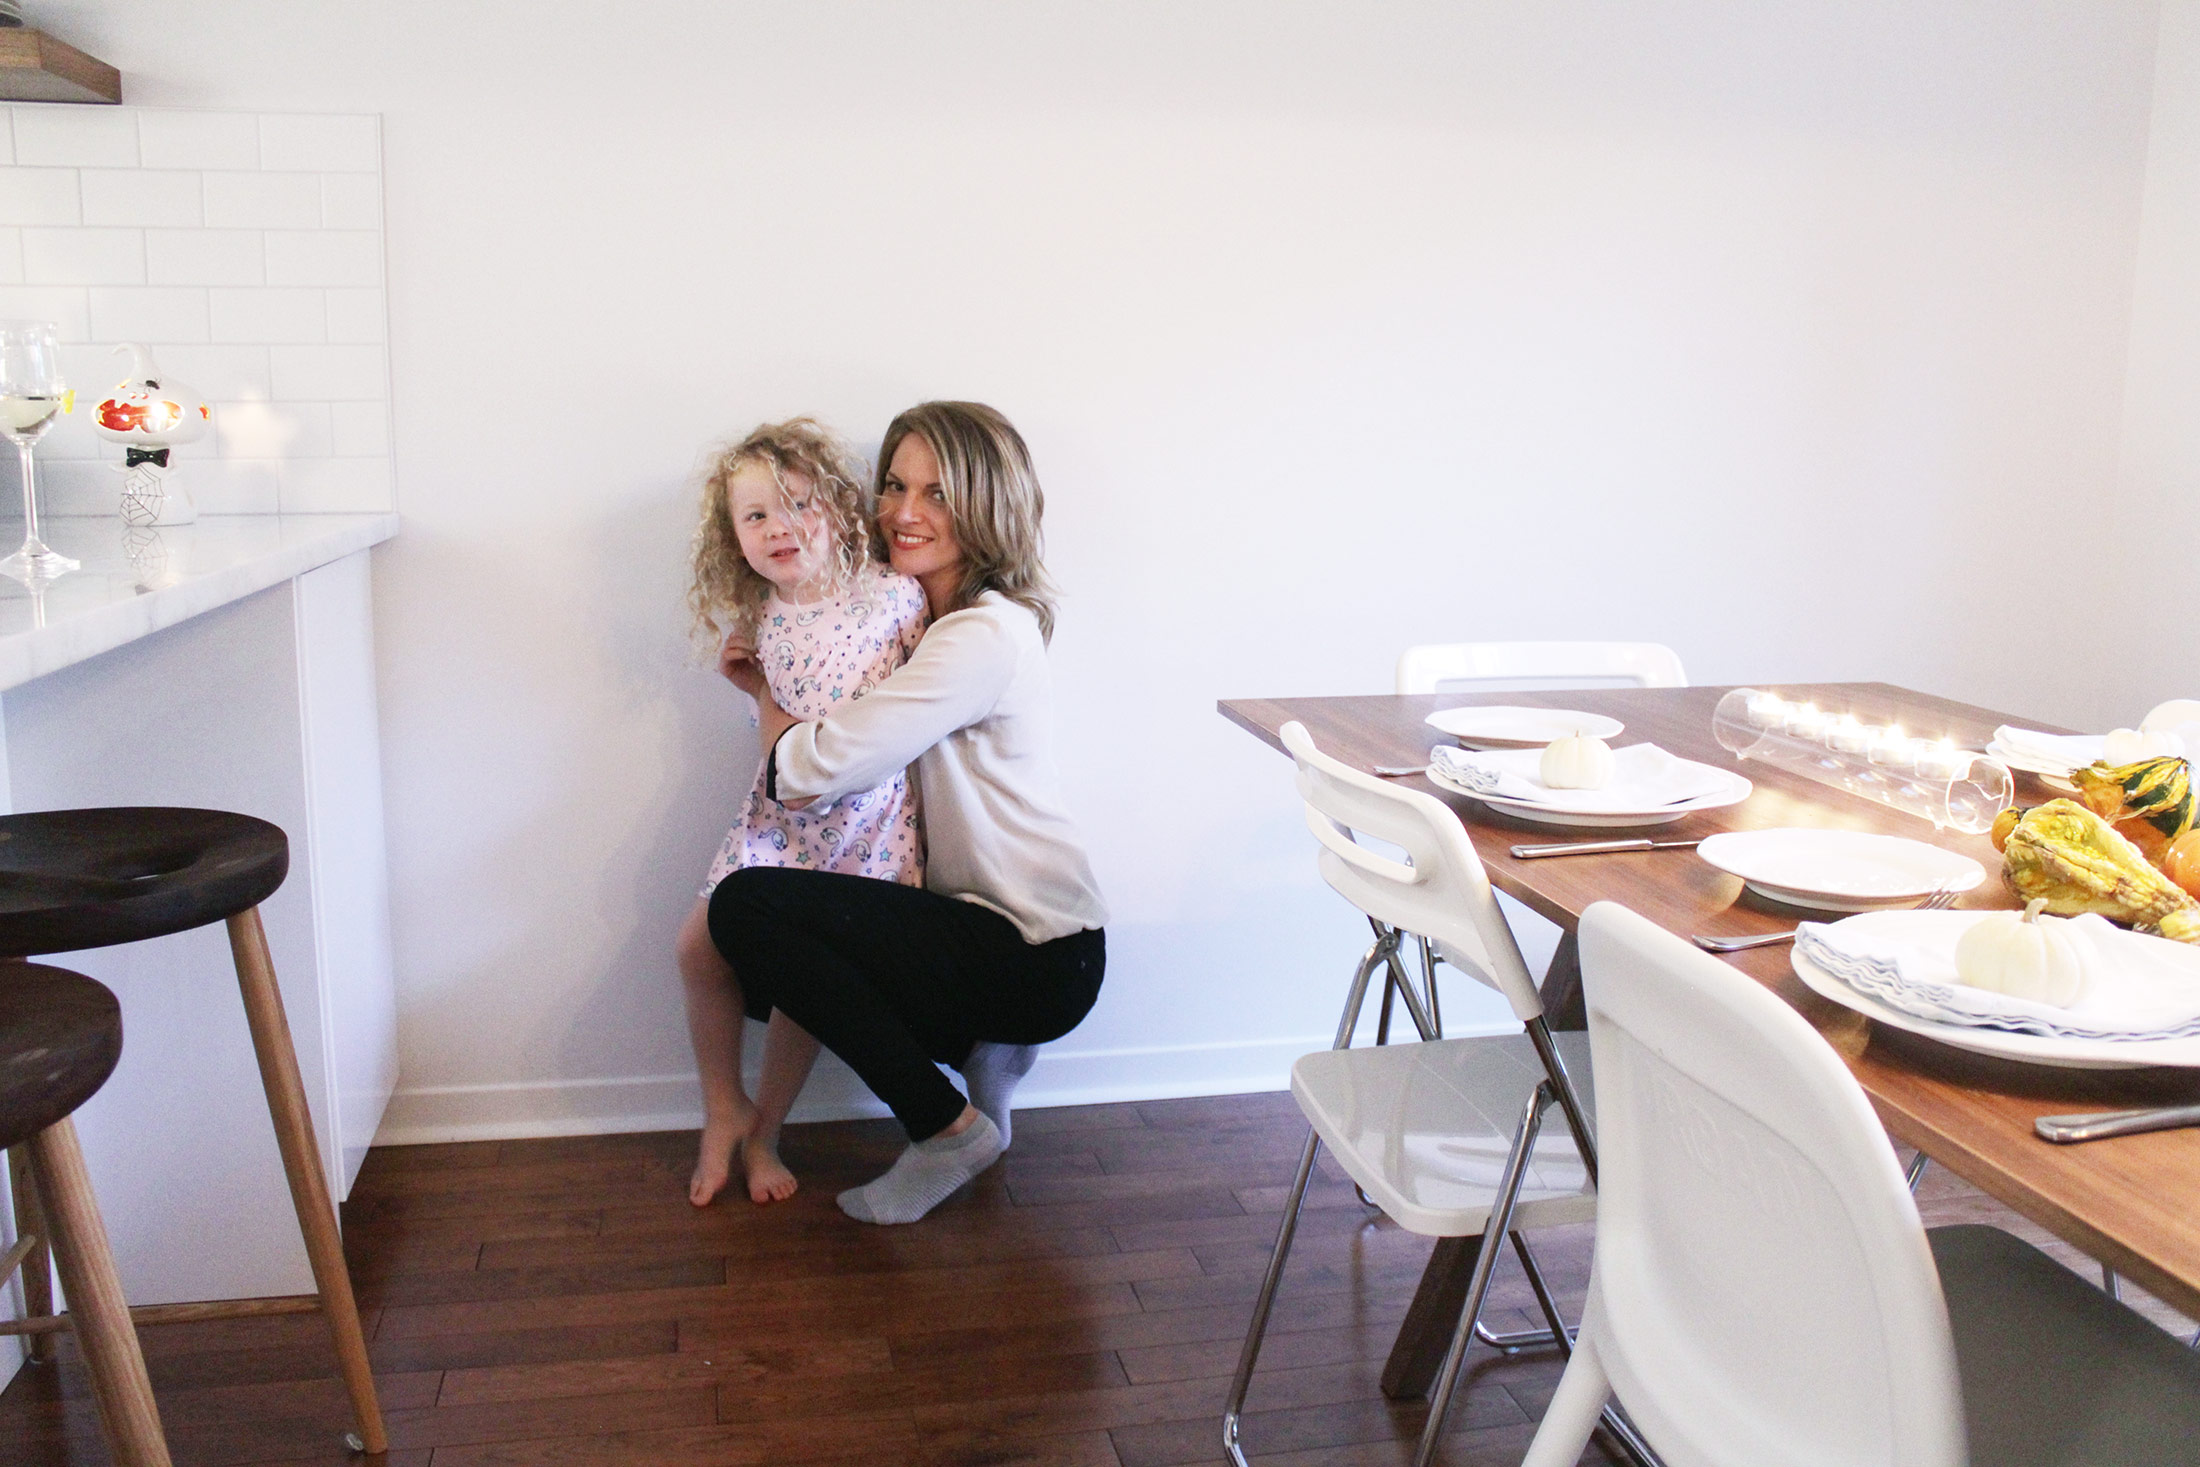 Ashley and one of her daughters at Thanksgiving. In Canada this holiday was last weekend in case you are confused.